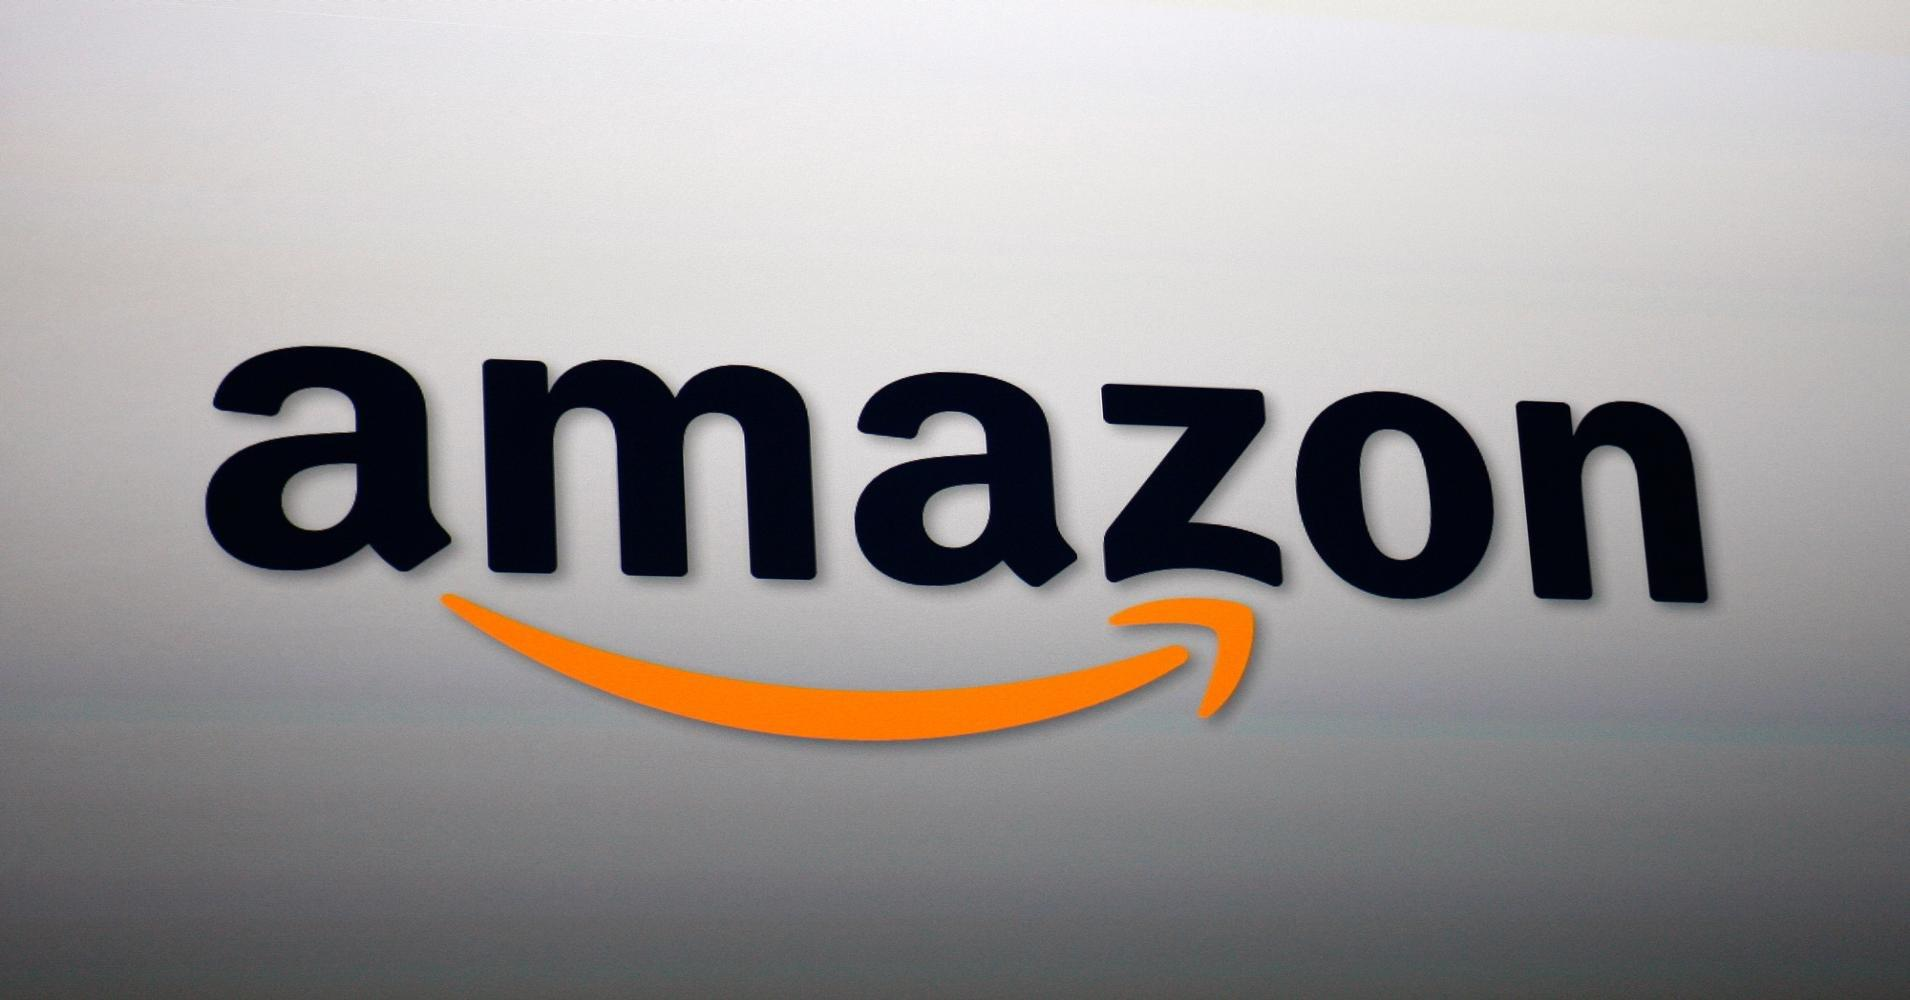 Amazon launches WorkMail to take on Microsoft